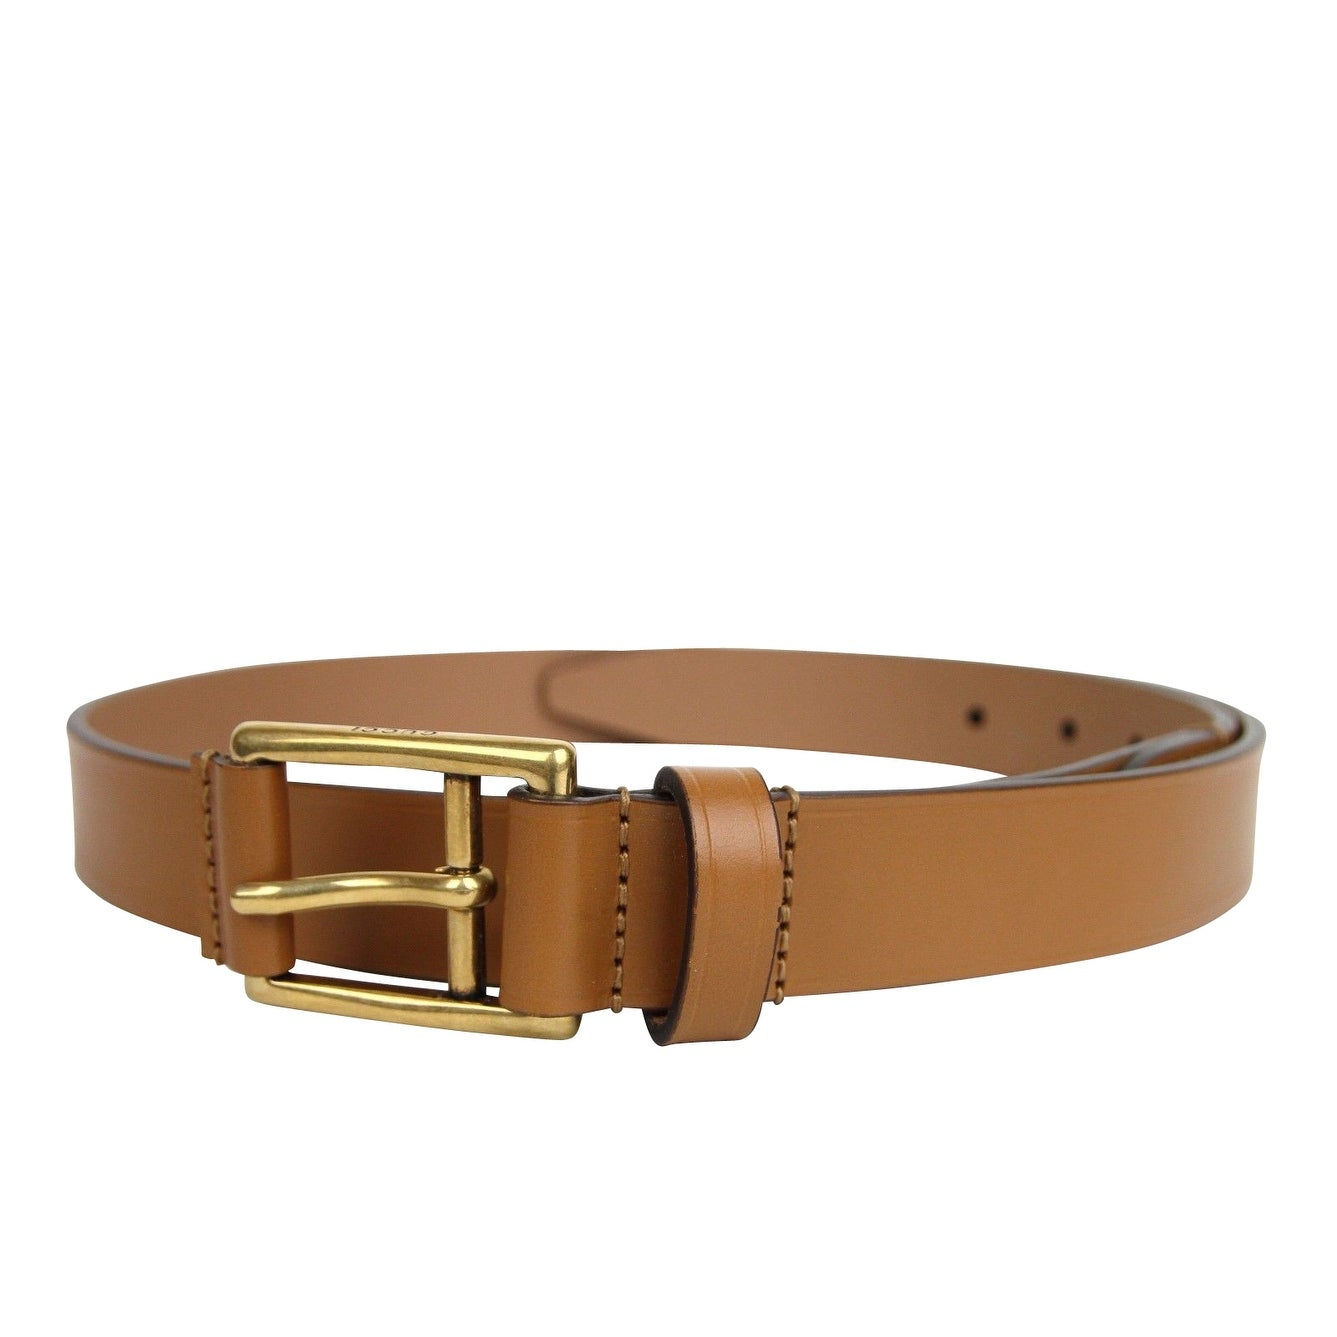 9fab6042fc1 Shop New Gucci Men s Feather Light Brown Leather Belt Gold Buckle Detail  375182 2613 - Free Shipping Today - Overstock - 25455624